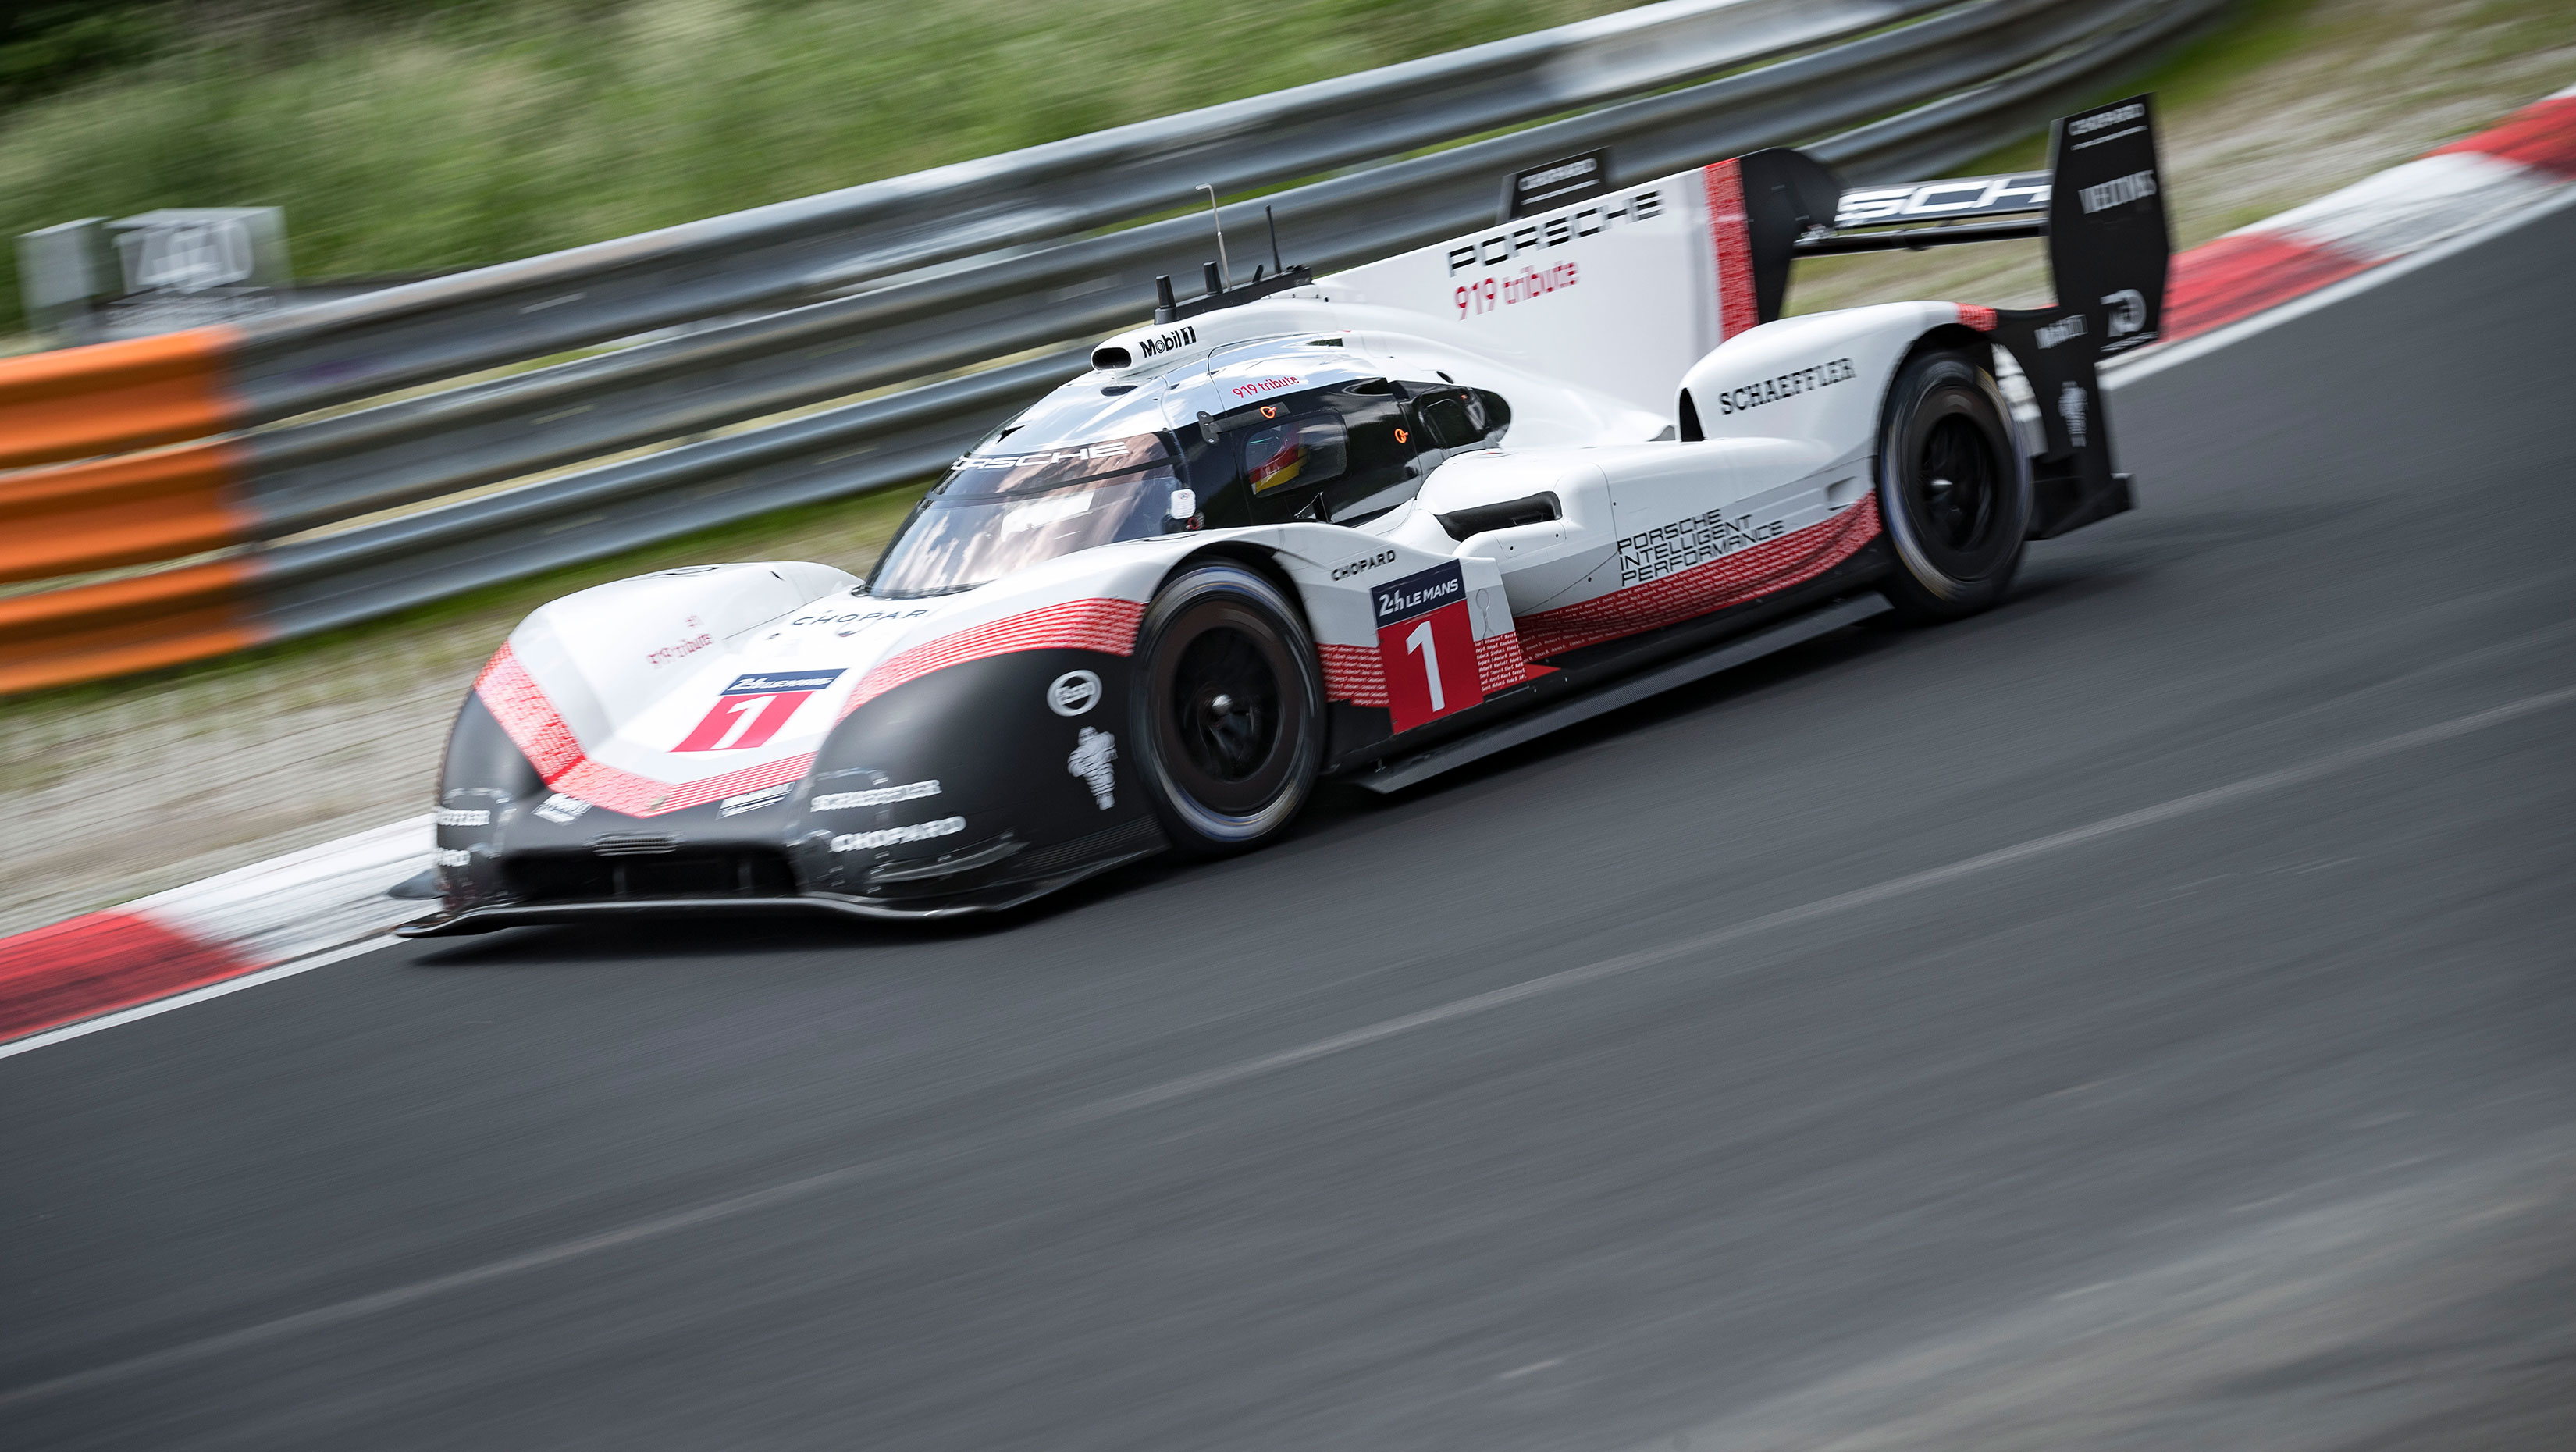 Porsche 919 Evo Has Lapped The Nurburgring In 5:19